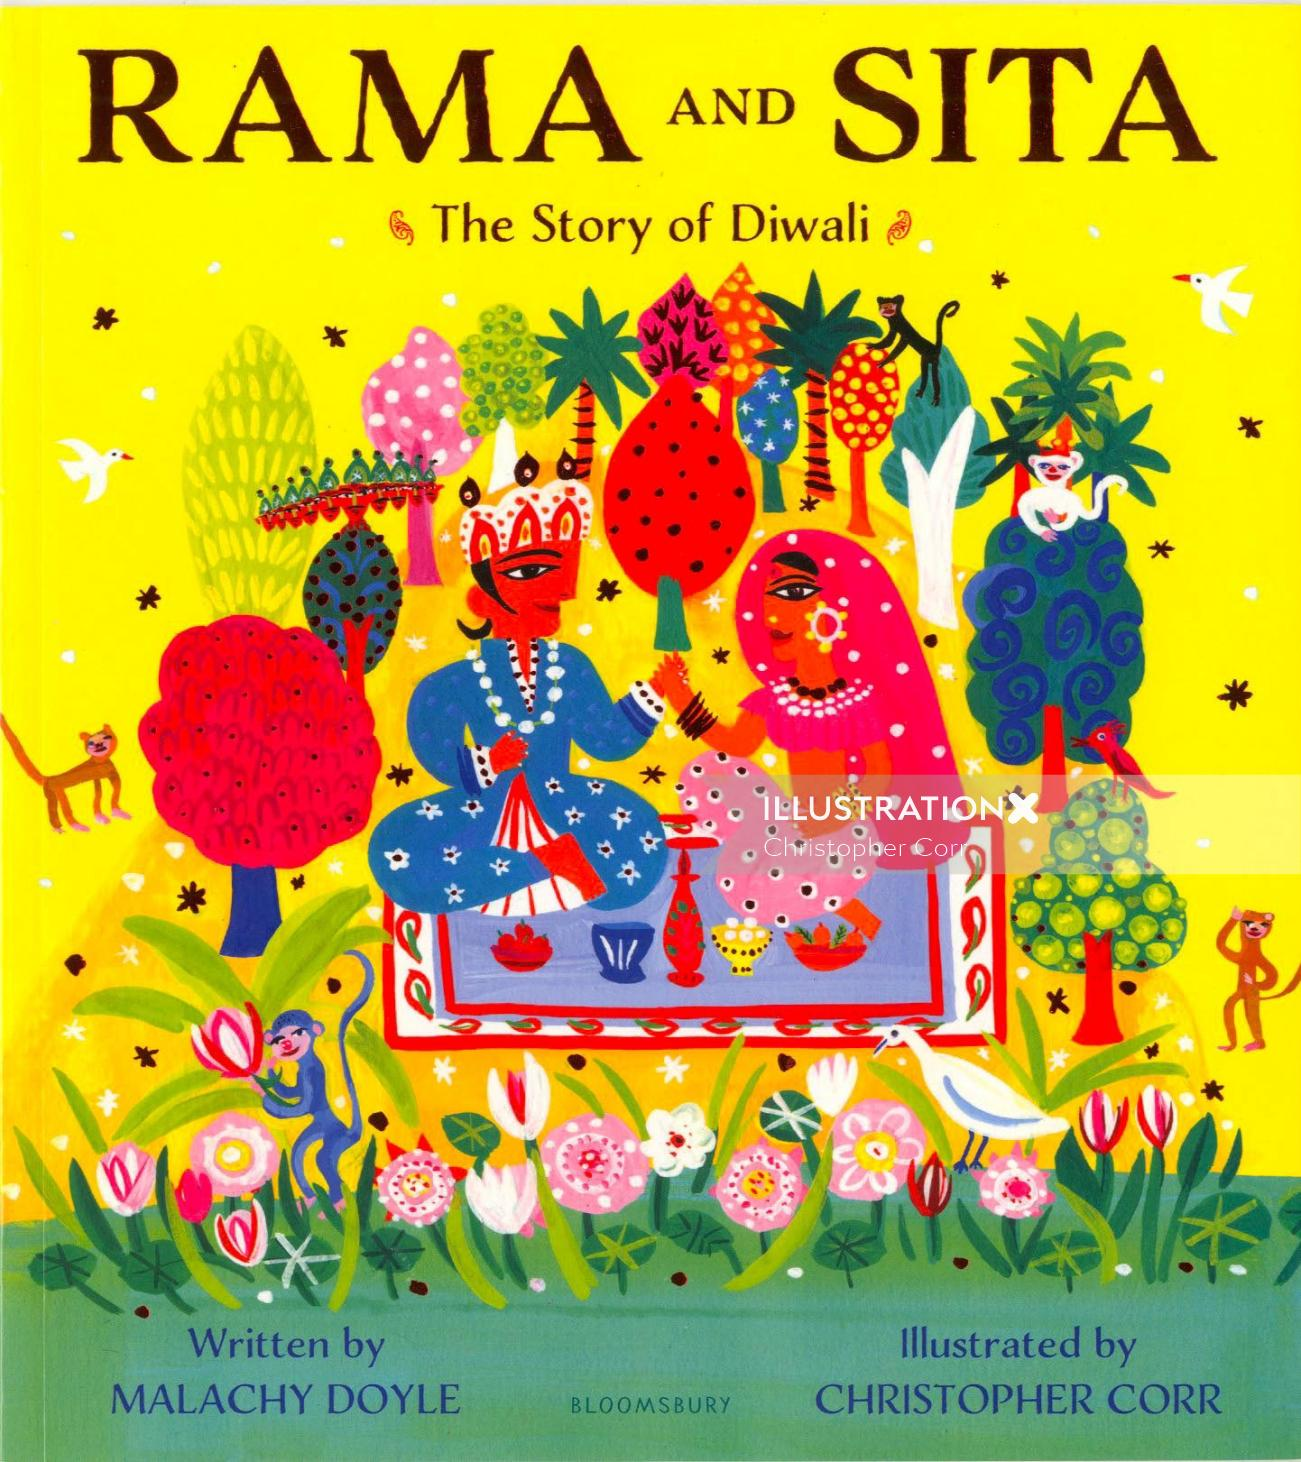 Book cover design of Rama and sita story